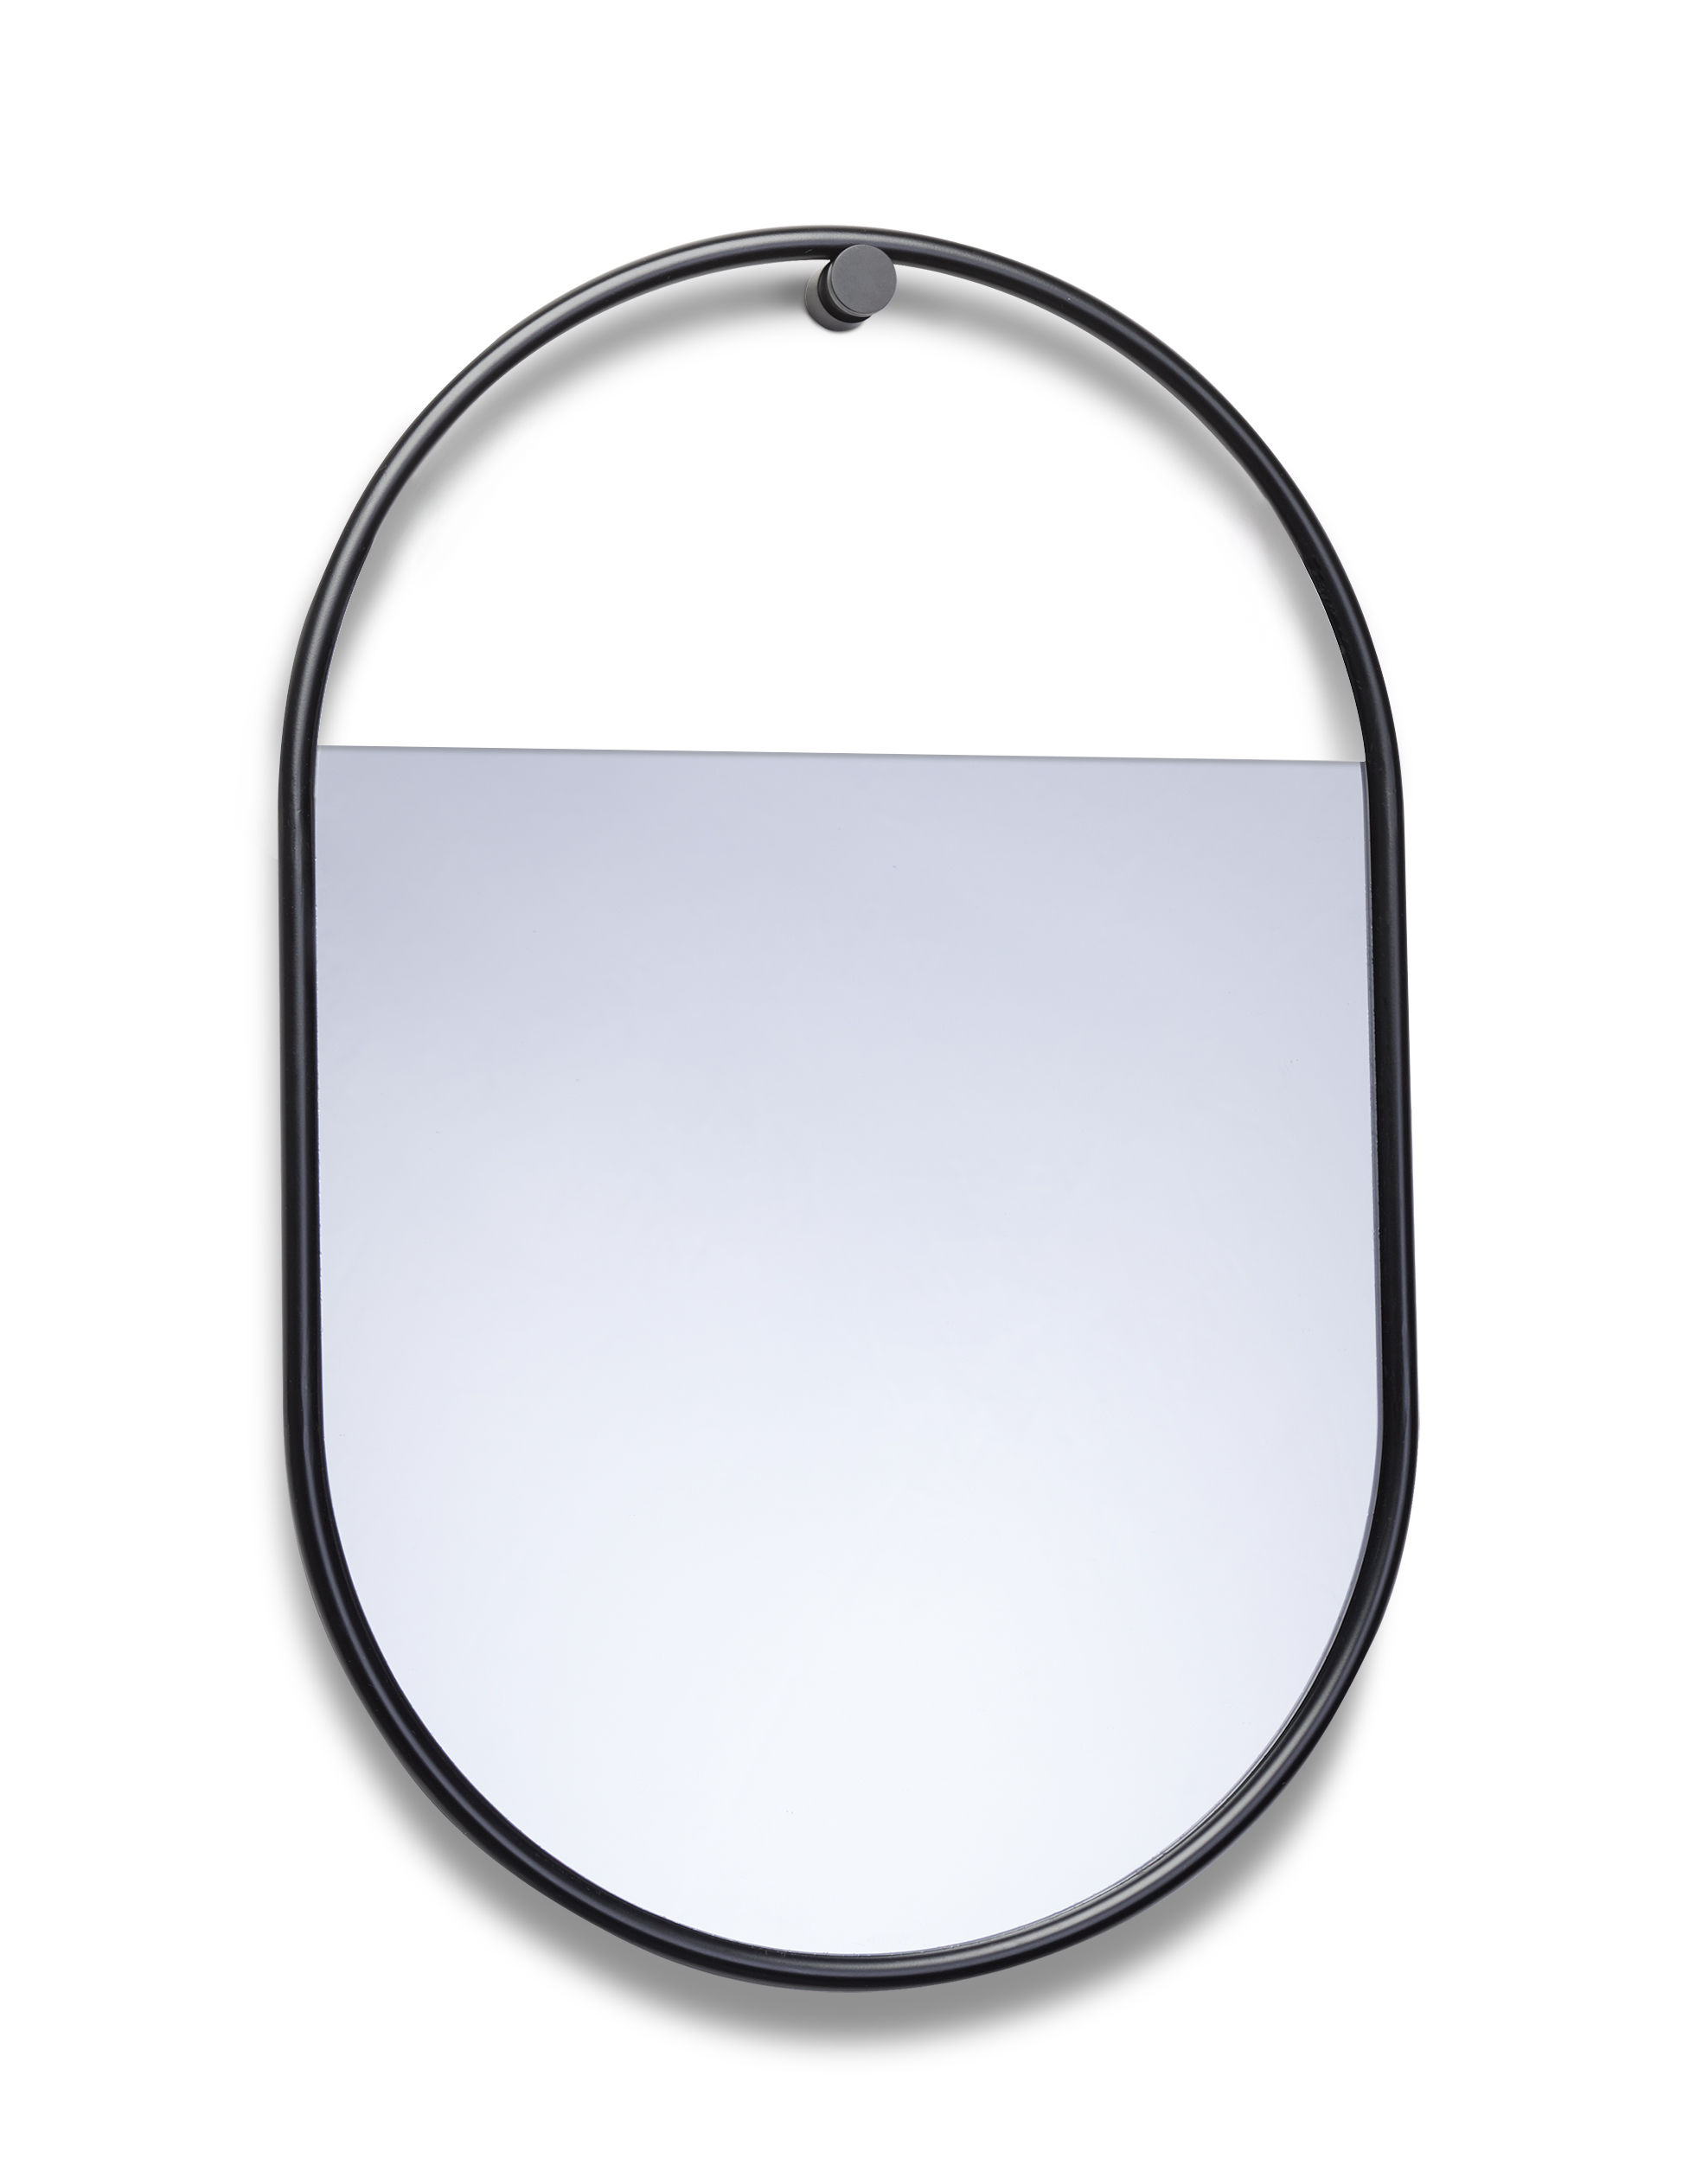 Decoration Mirrors K Wall Mirror Oval 40 X 60 Cm By